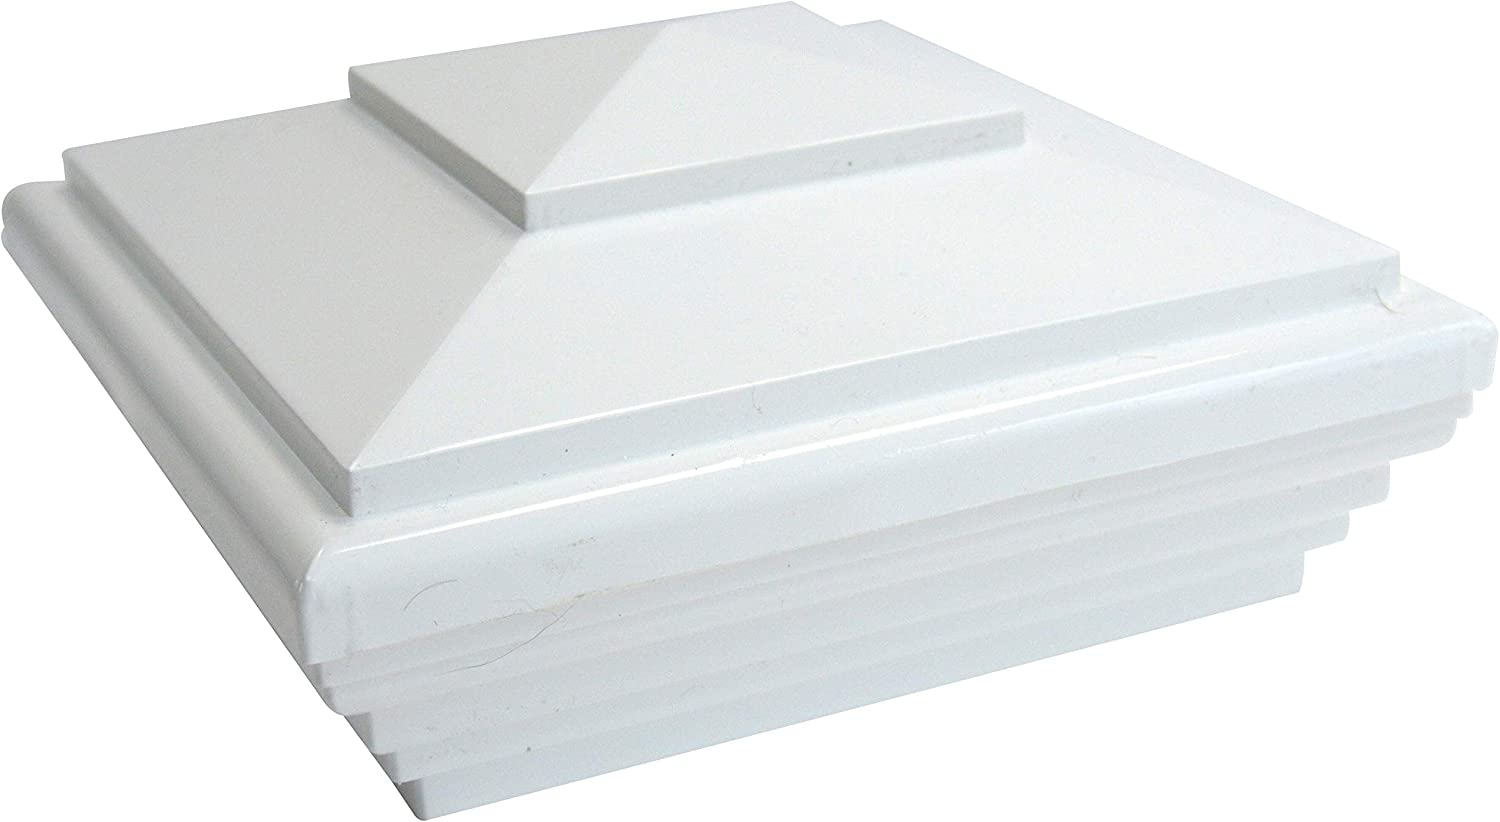 36-Pack, 4 inch x 4 inch BodShell Vinyl Fence Post Cap New England White Bulk Pack 5x5 or 4x4 inches